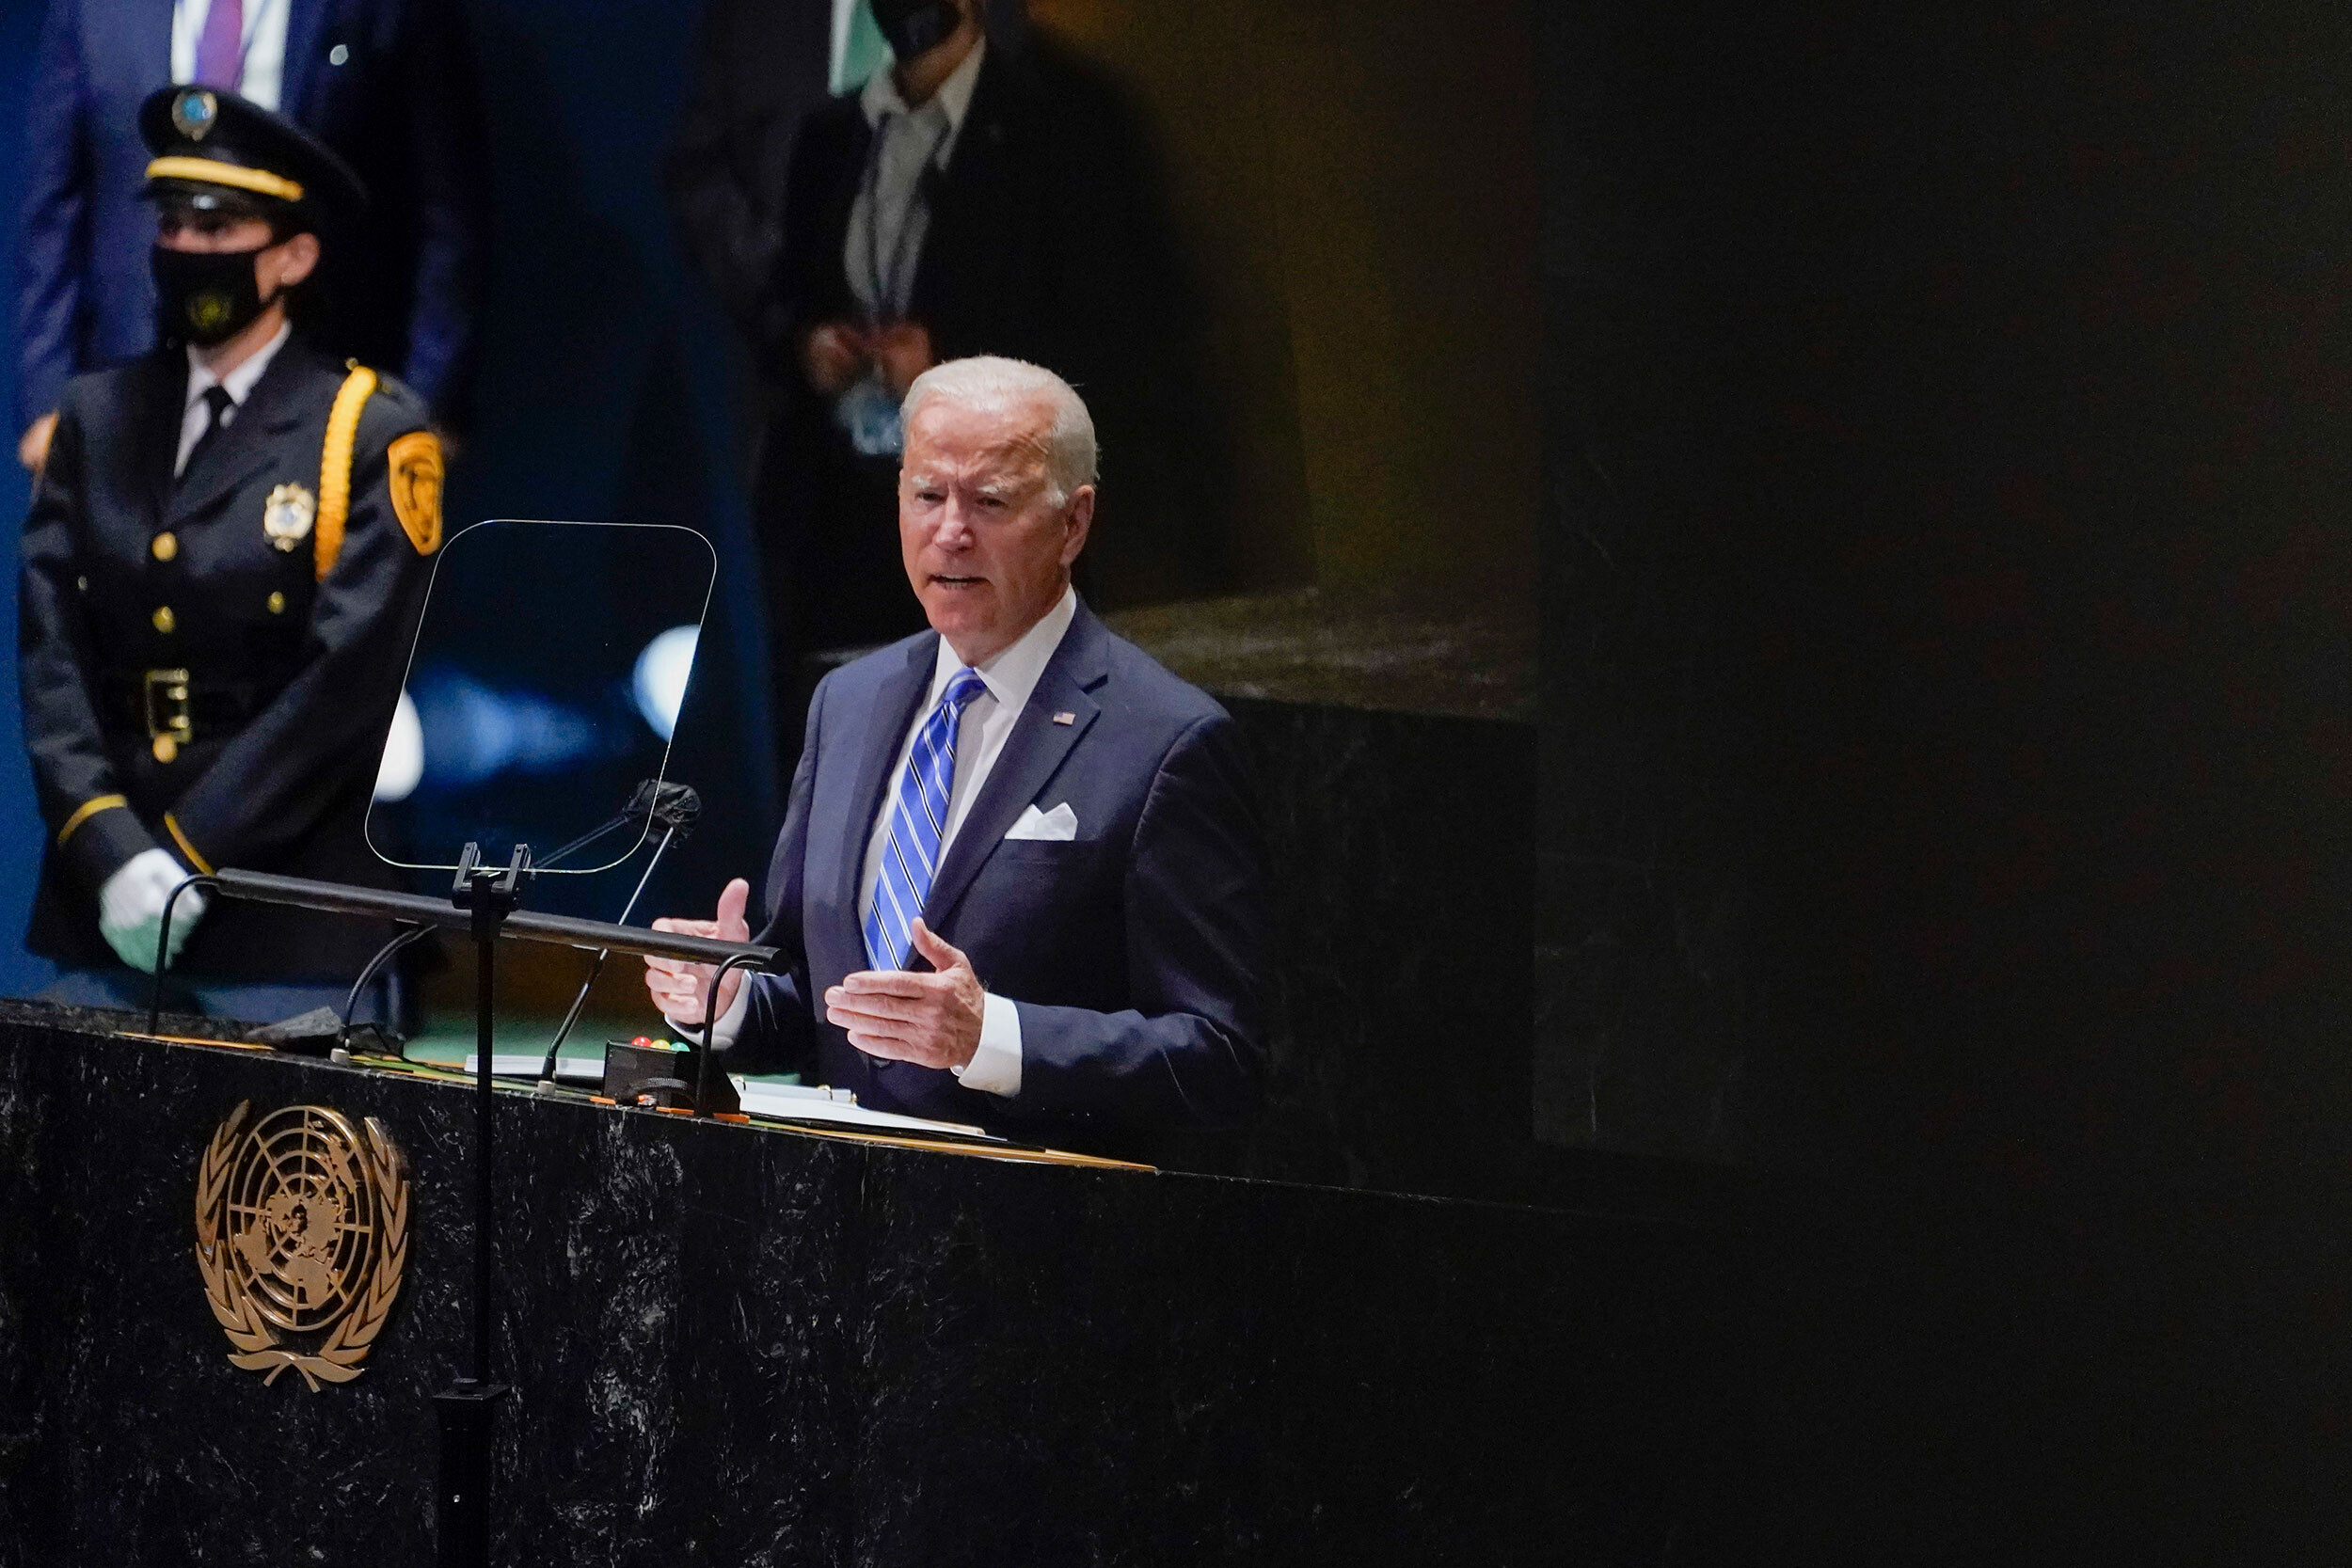 <i>Evan Vucci/AP</i><br/>US President Joe Biden delivers remarks to the 76th Session of the United Nations General Assembly on September 21.